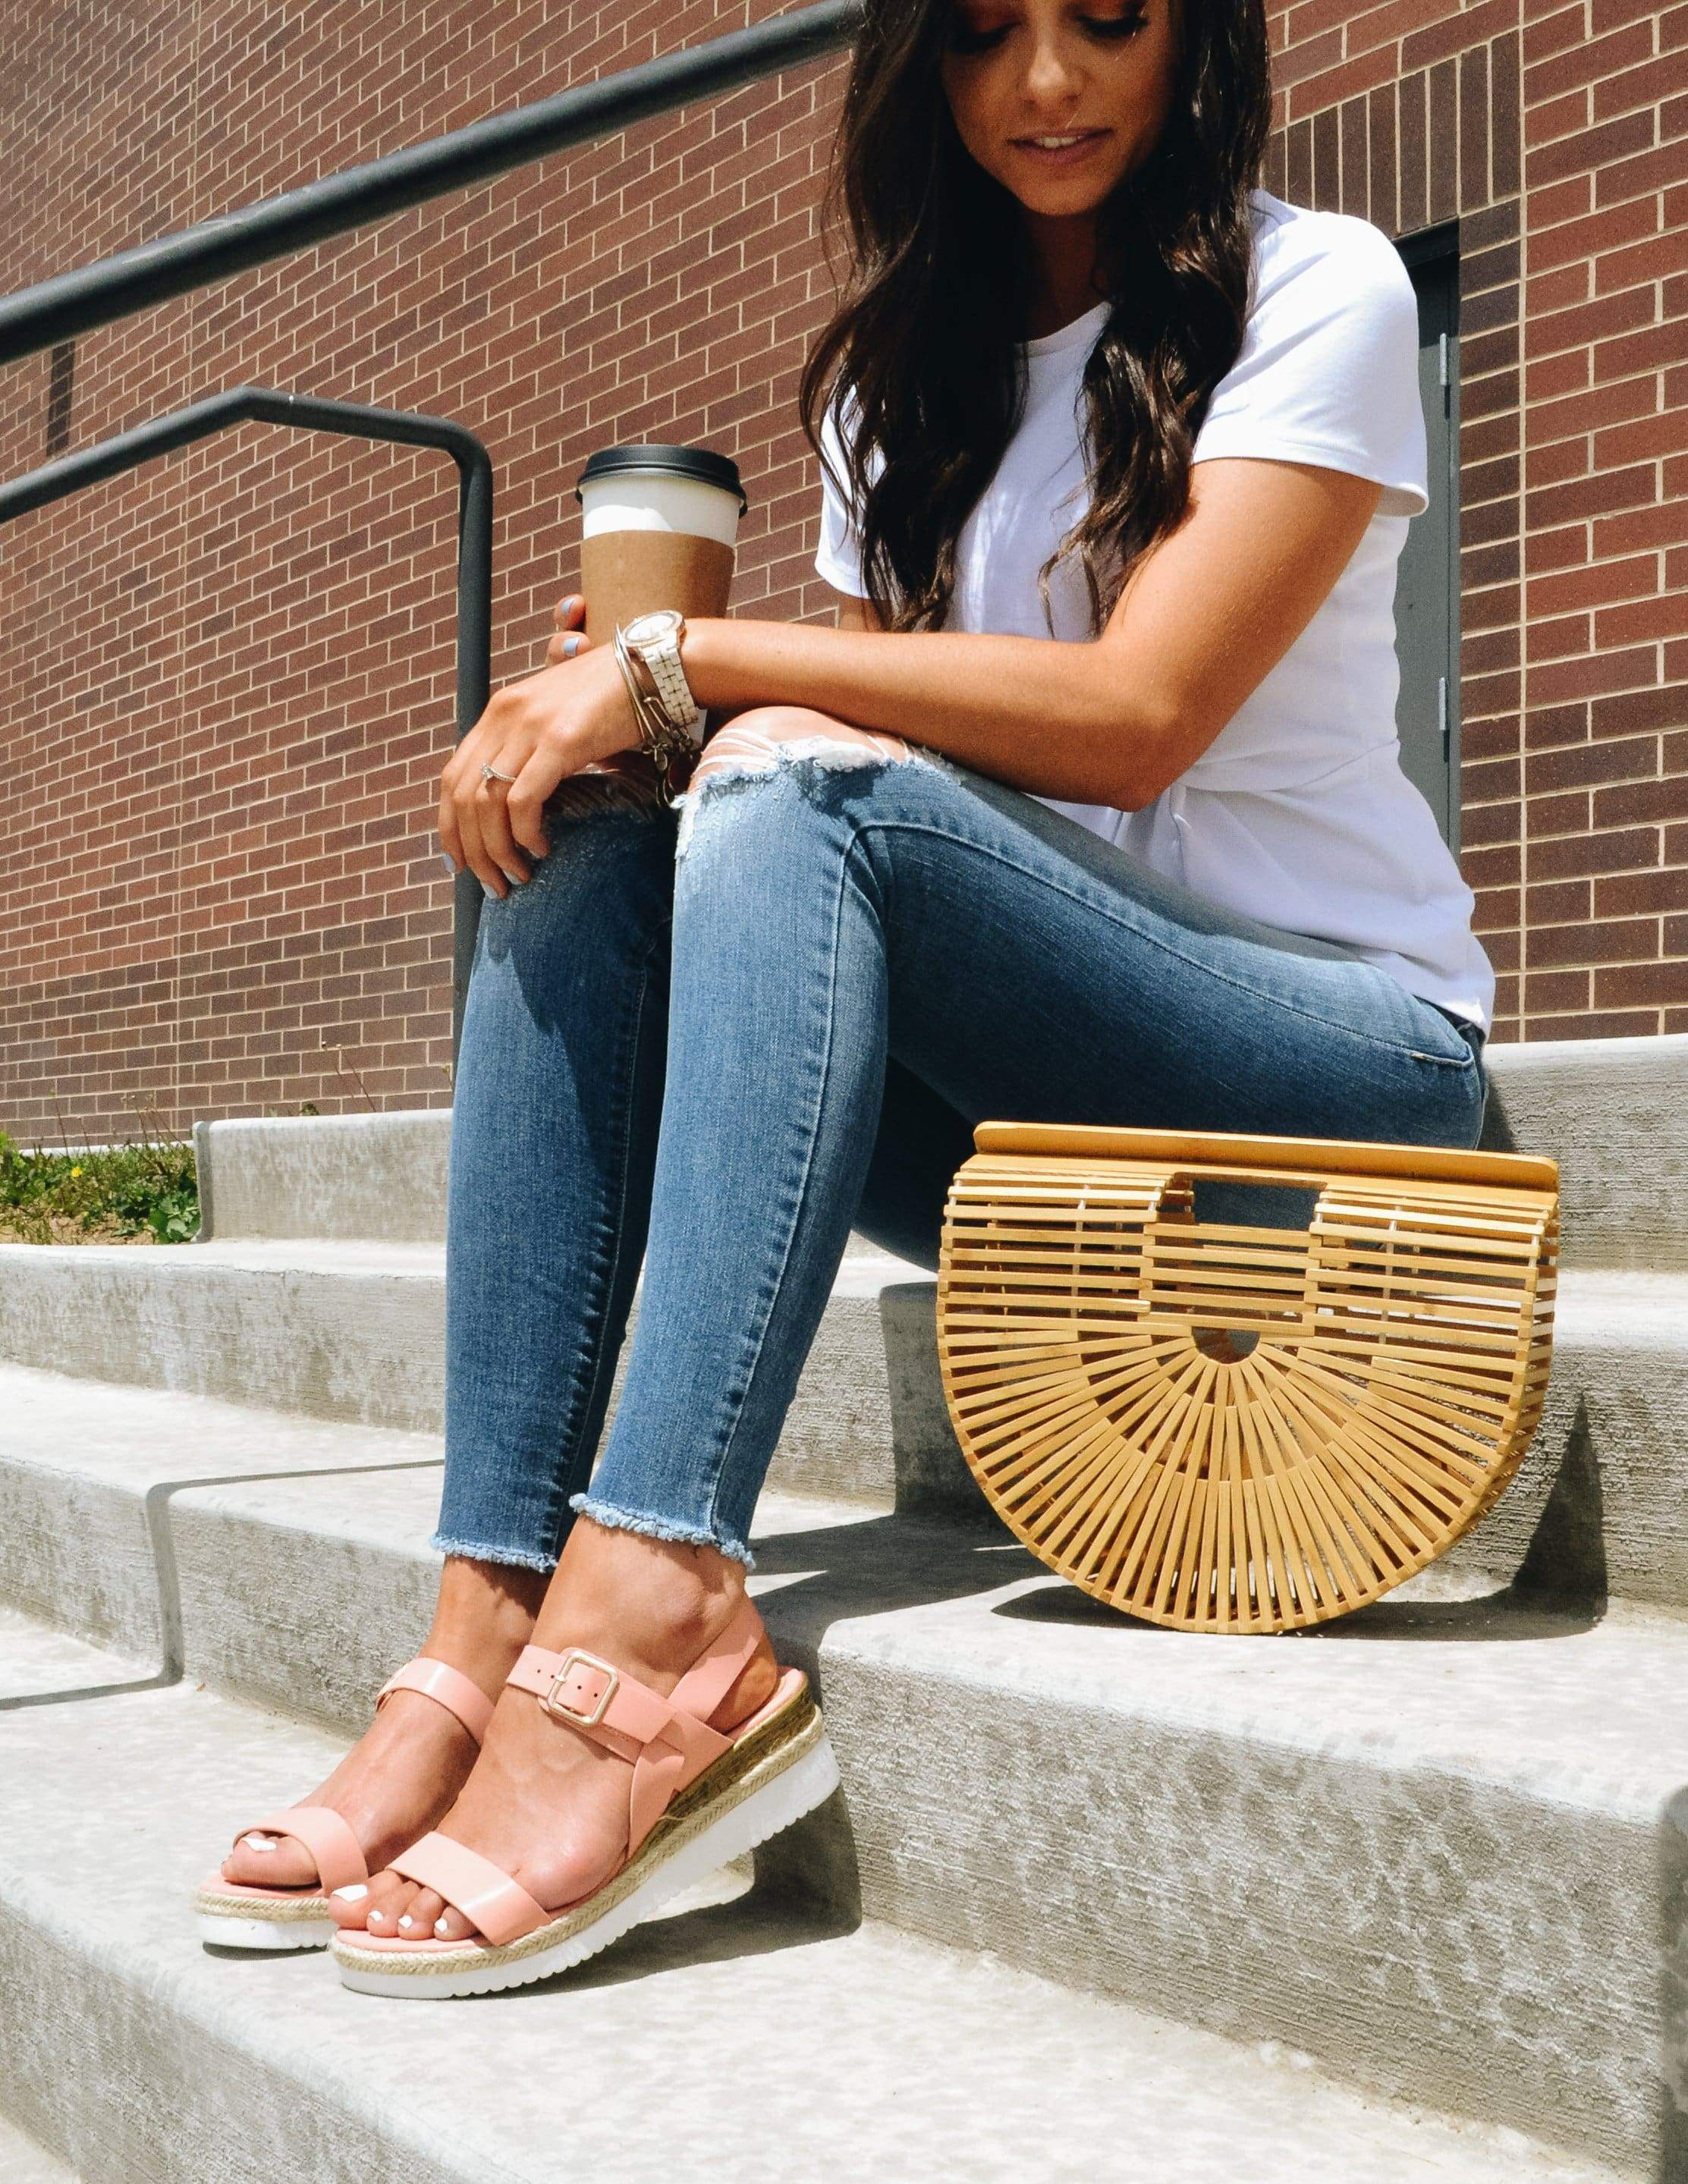 Model sitting outside holding coffee and tan purse - elle bleu shoes